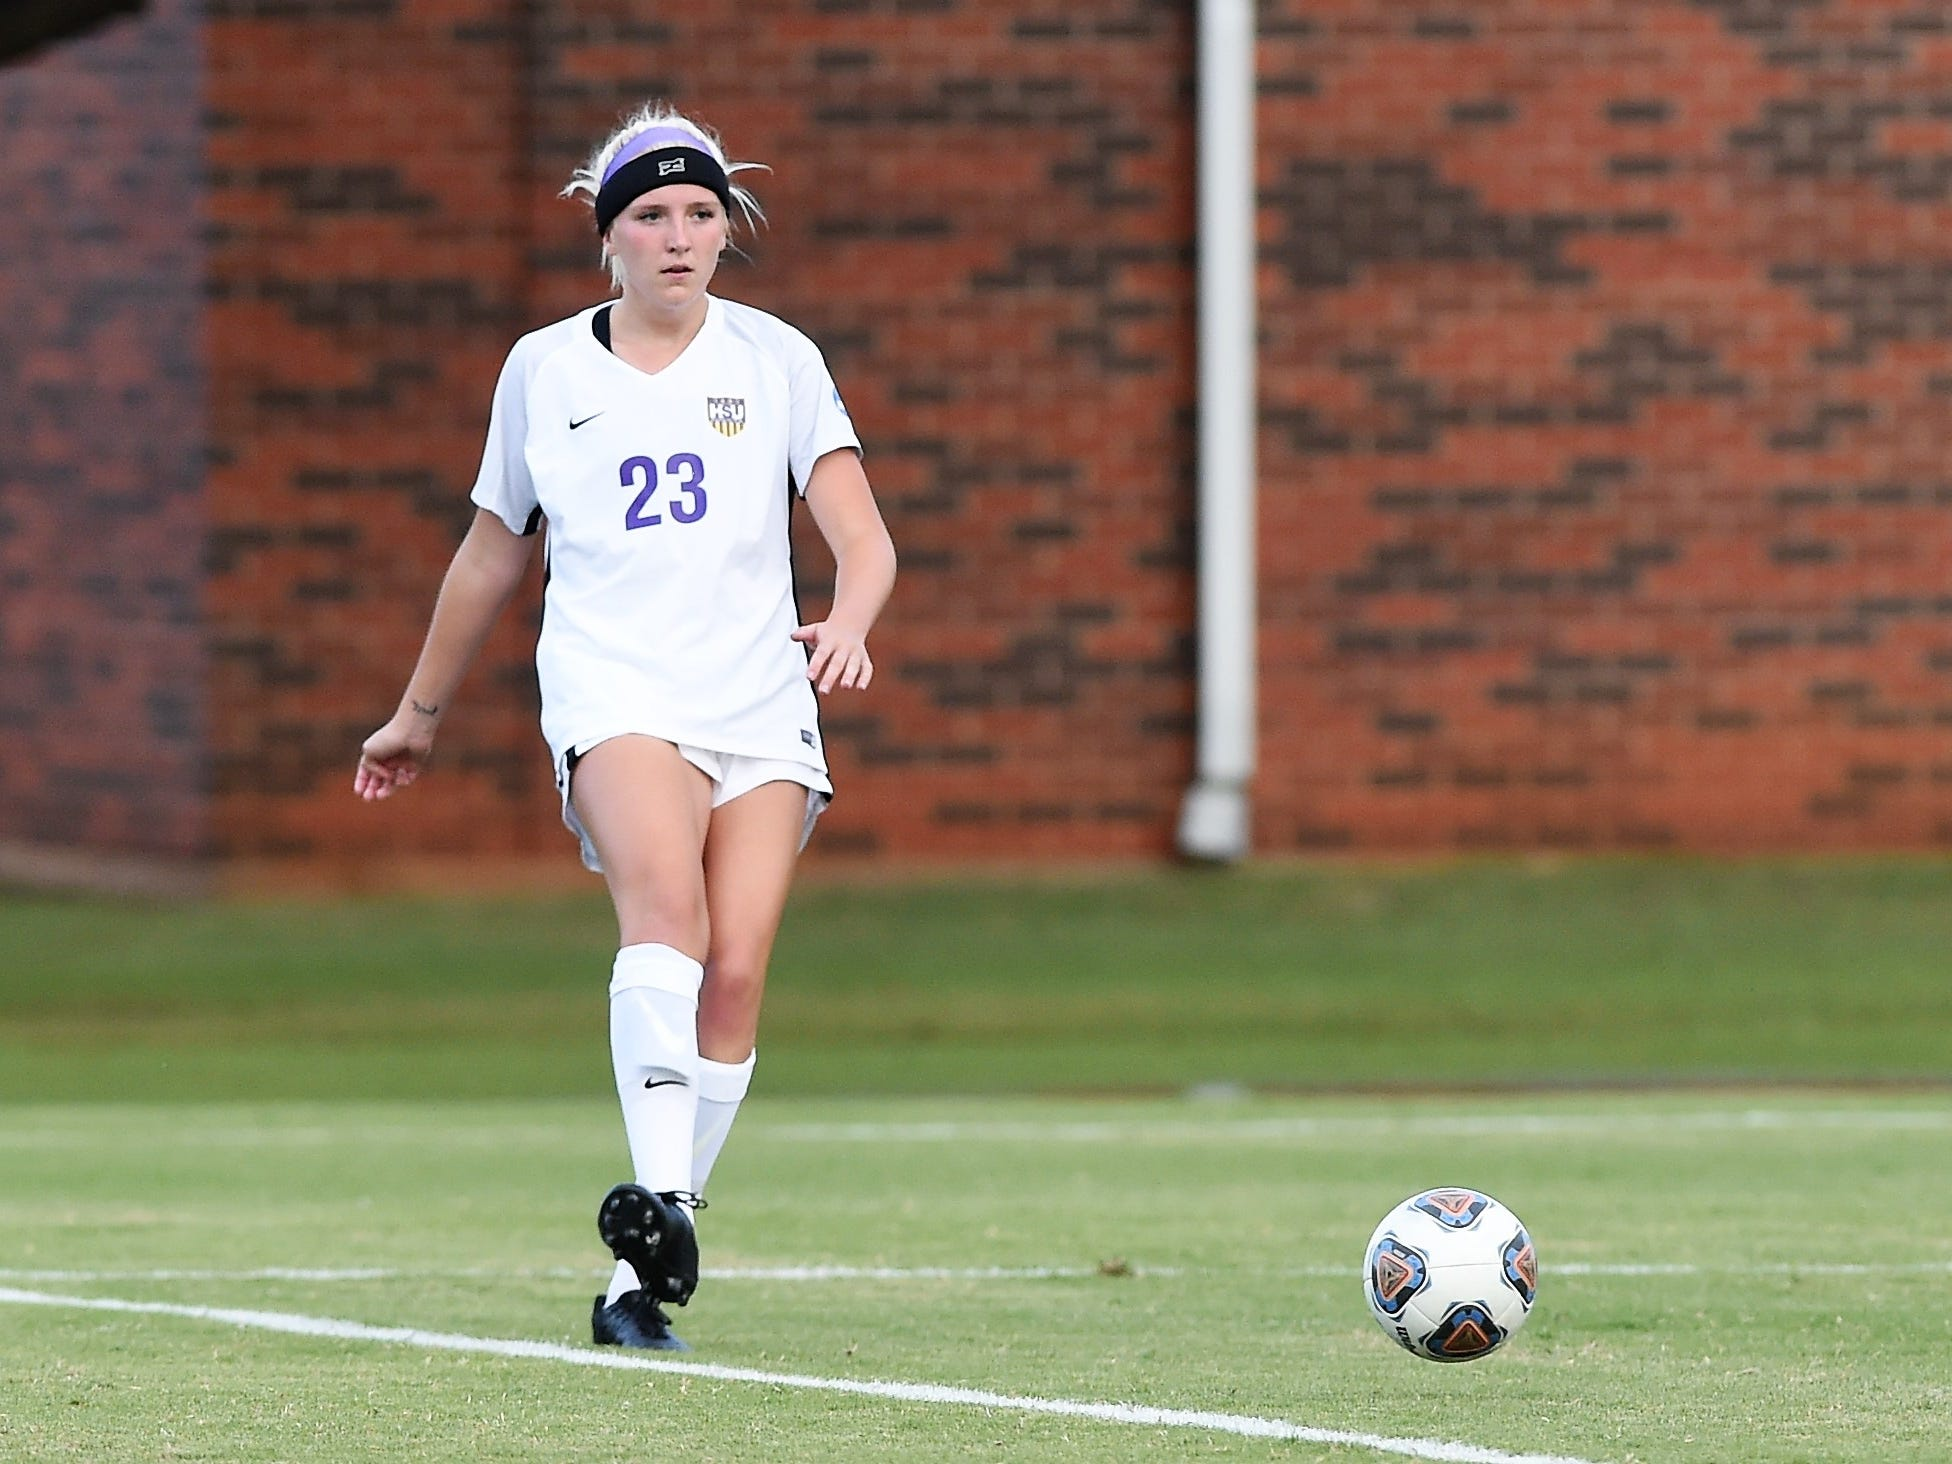 Hardin-Simmons defender Baylee Ford (23) makes a pass against Howard Payne at the HSU Soccer Complex on Thursday, Oct. 11, 2018. The Cowgirls won 4-1.